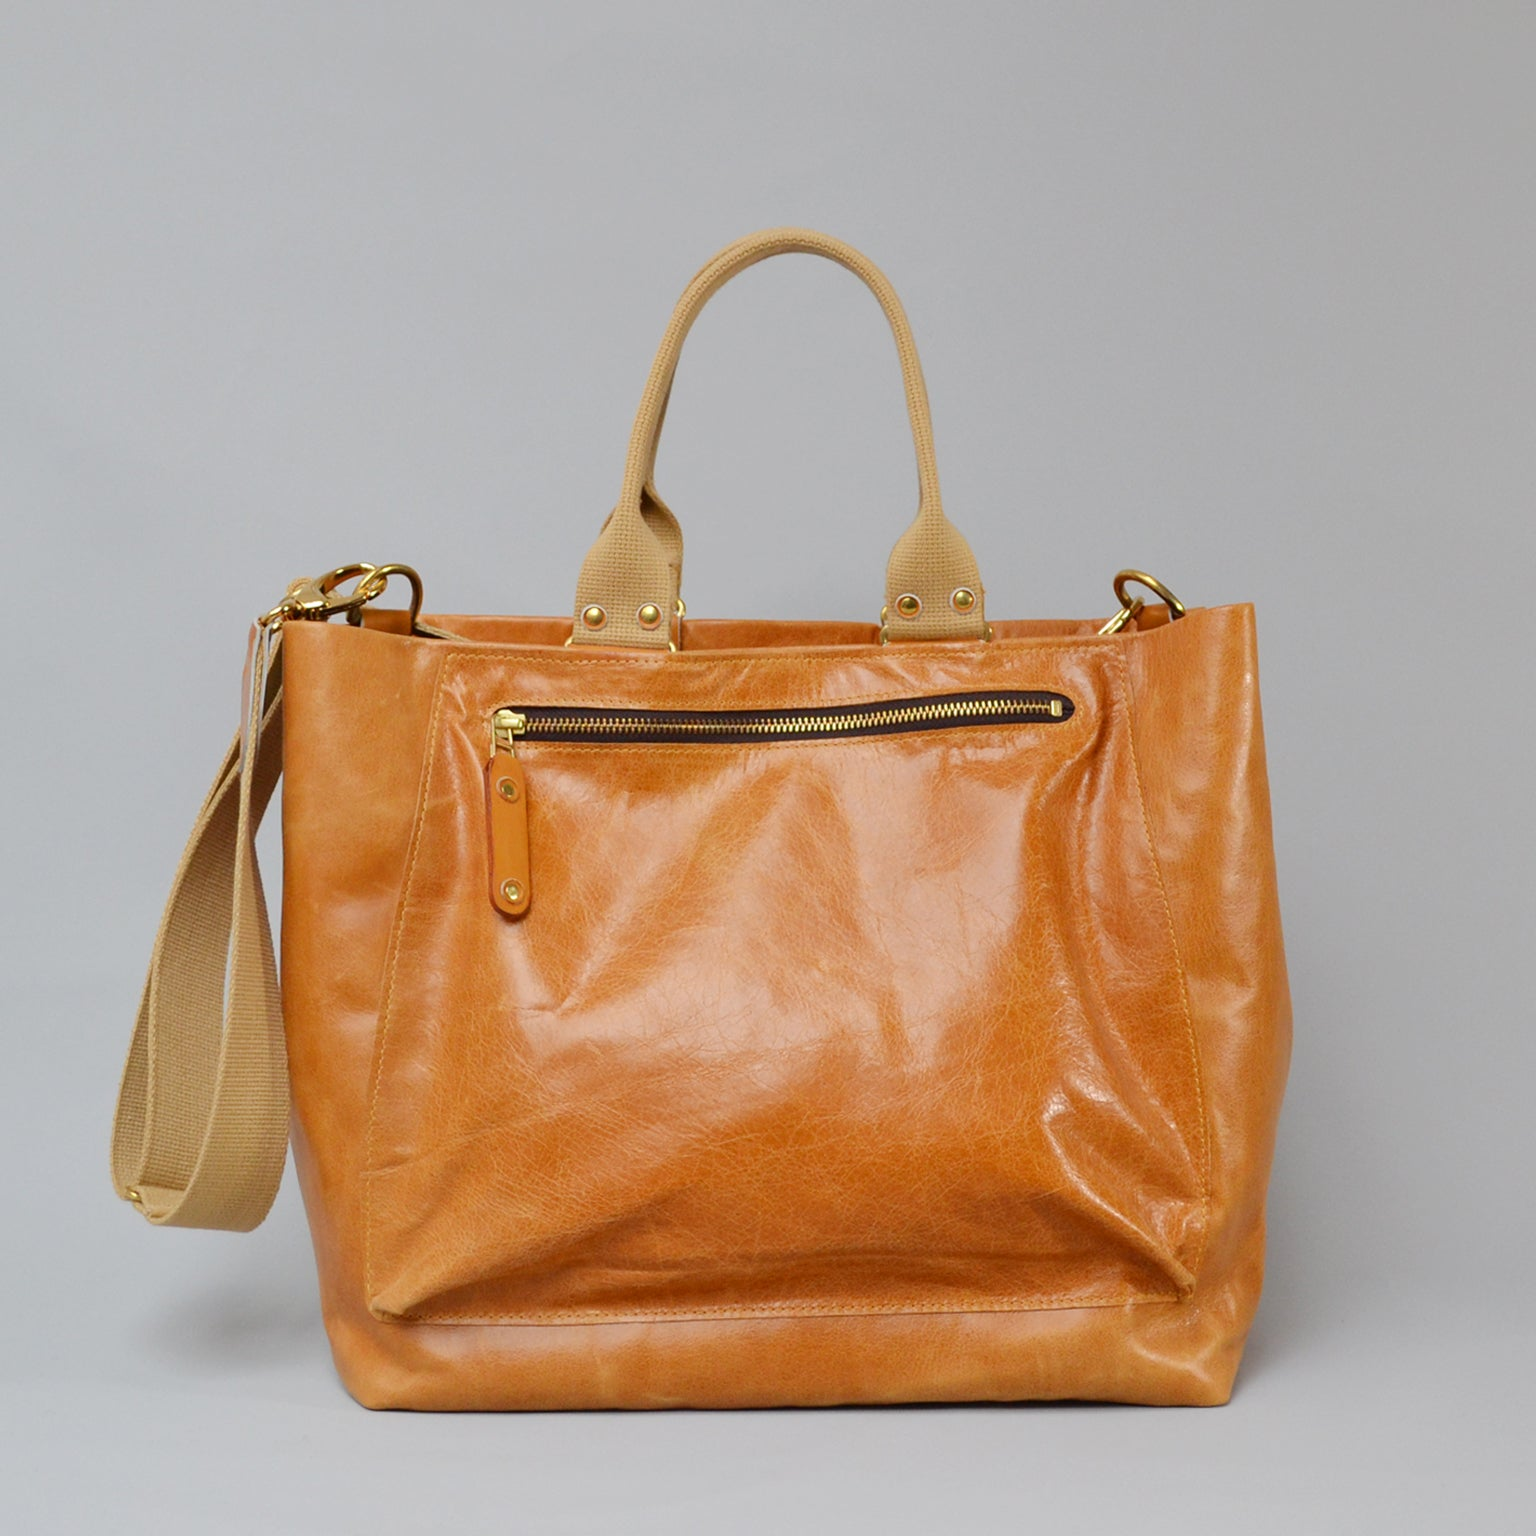 SOFIA <br/> Distressed Leather Shoulder Bag <br/> Tan